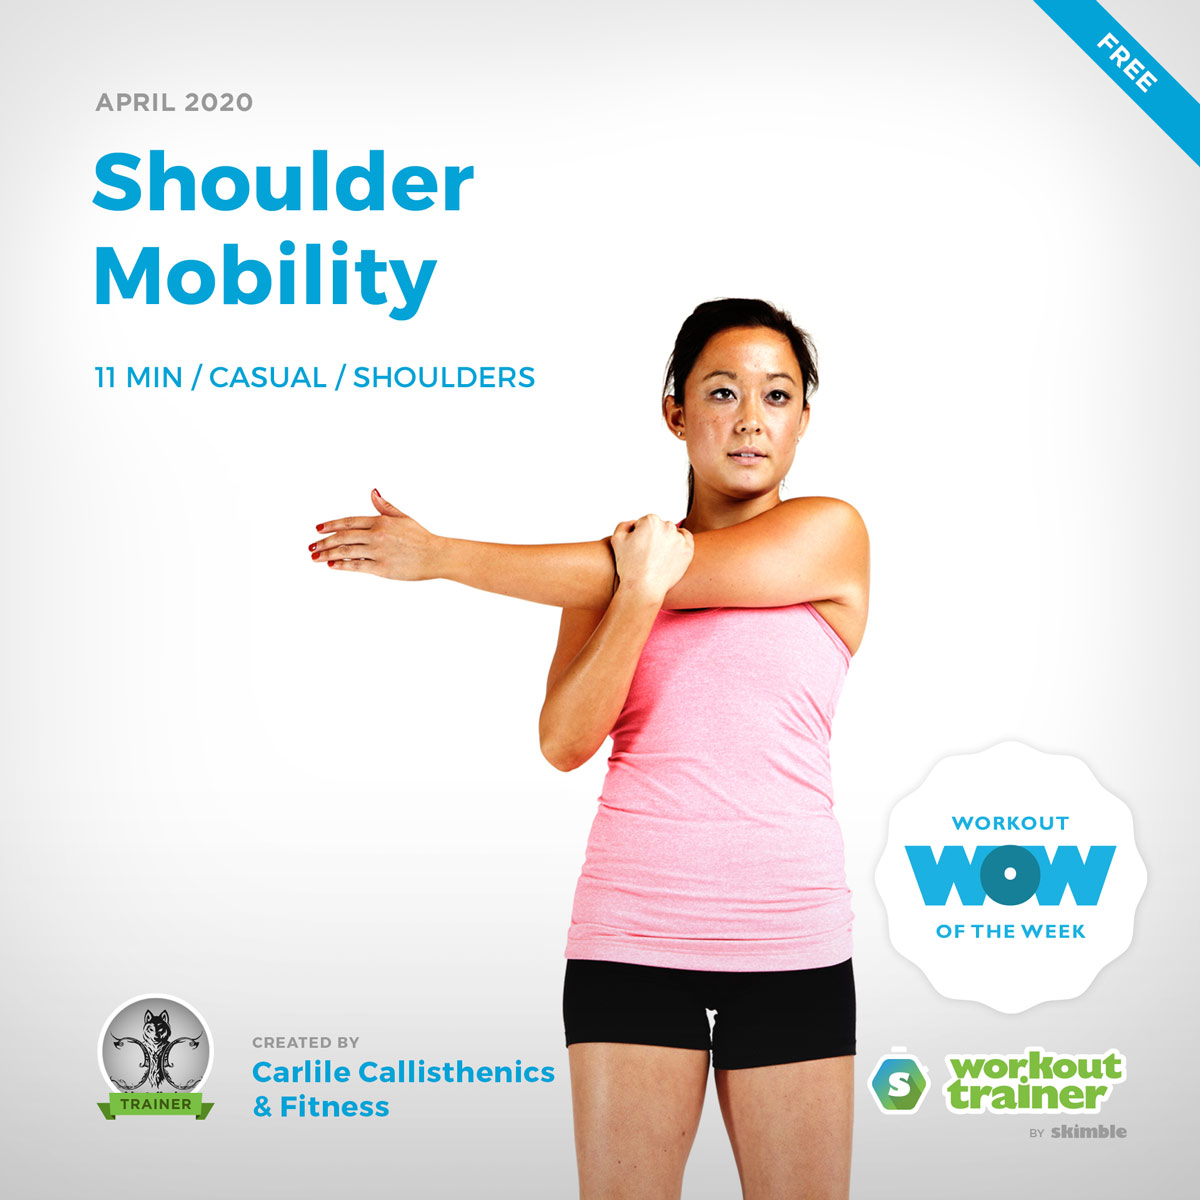 Workout Trainer by Skimble: Free Workout of the Week: Shoulder Mobility by Taylor Carlile